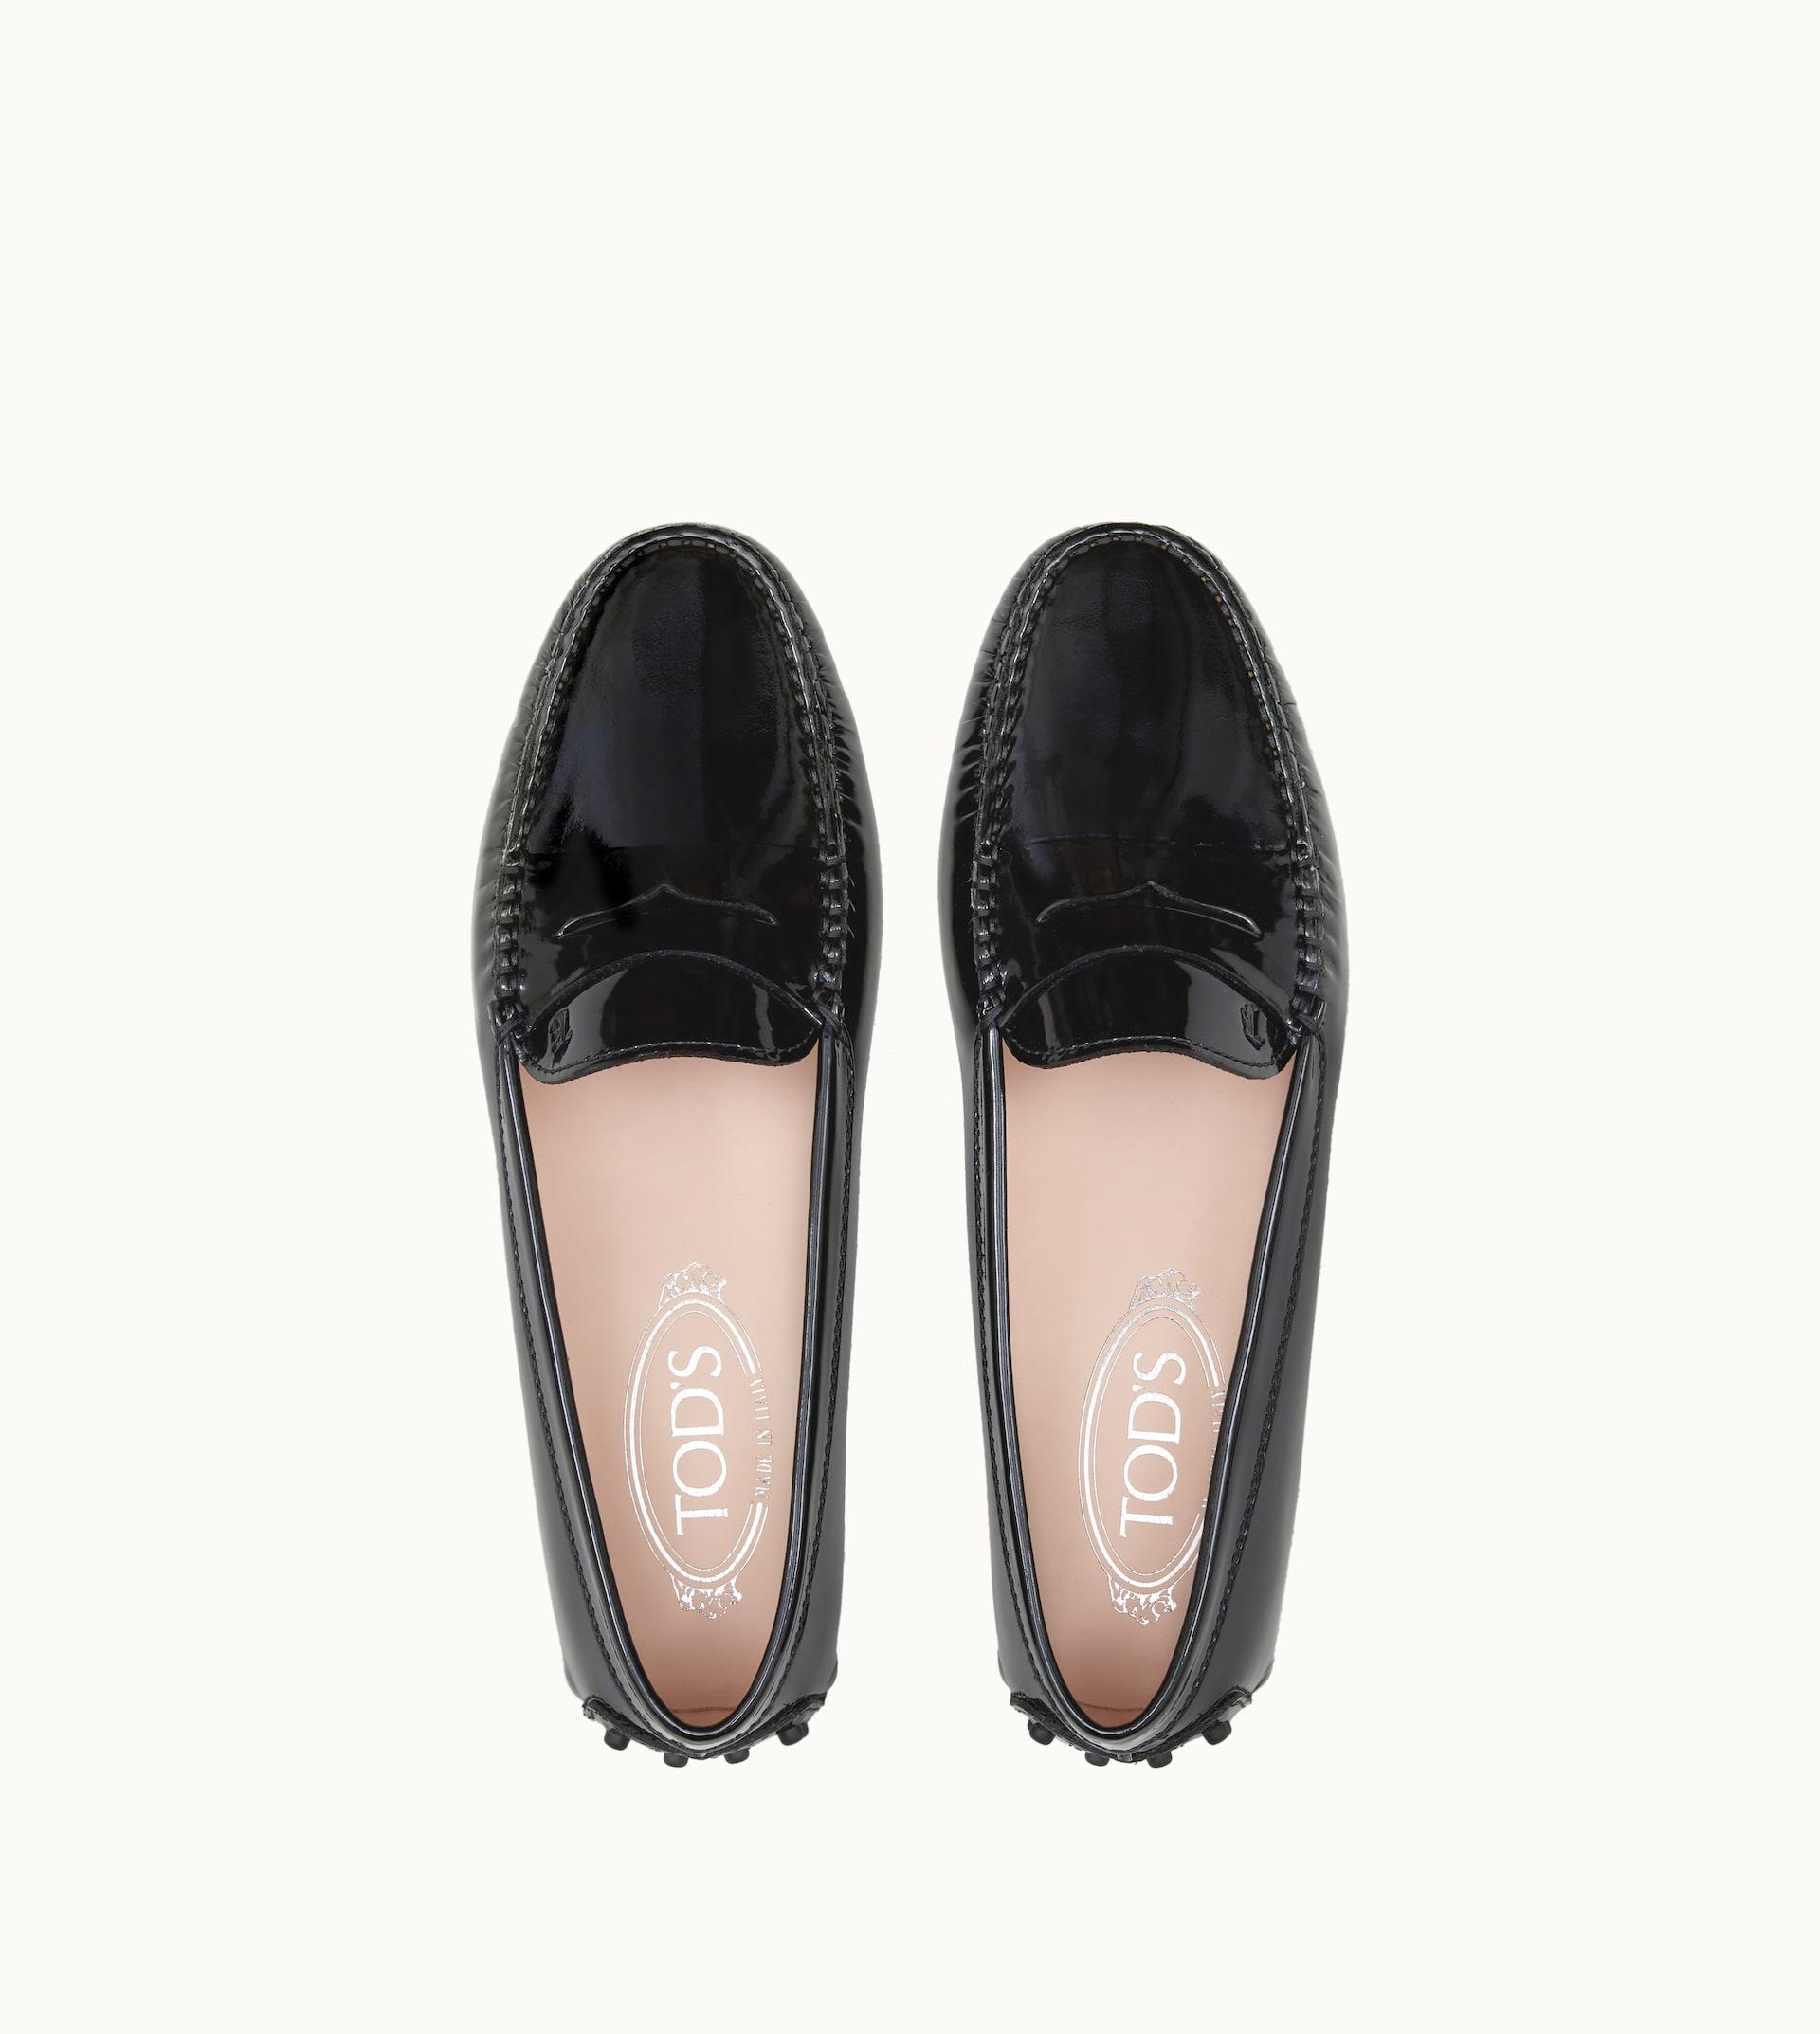 f1a97d54e70 Tod s - Black Gommino Driving Shoes In Patent Leather for Men - Lyst. View  fullscreen